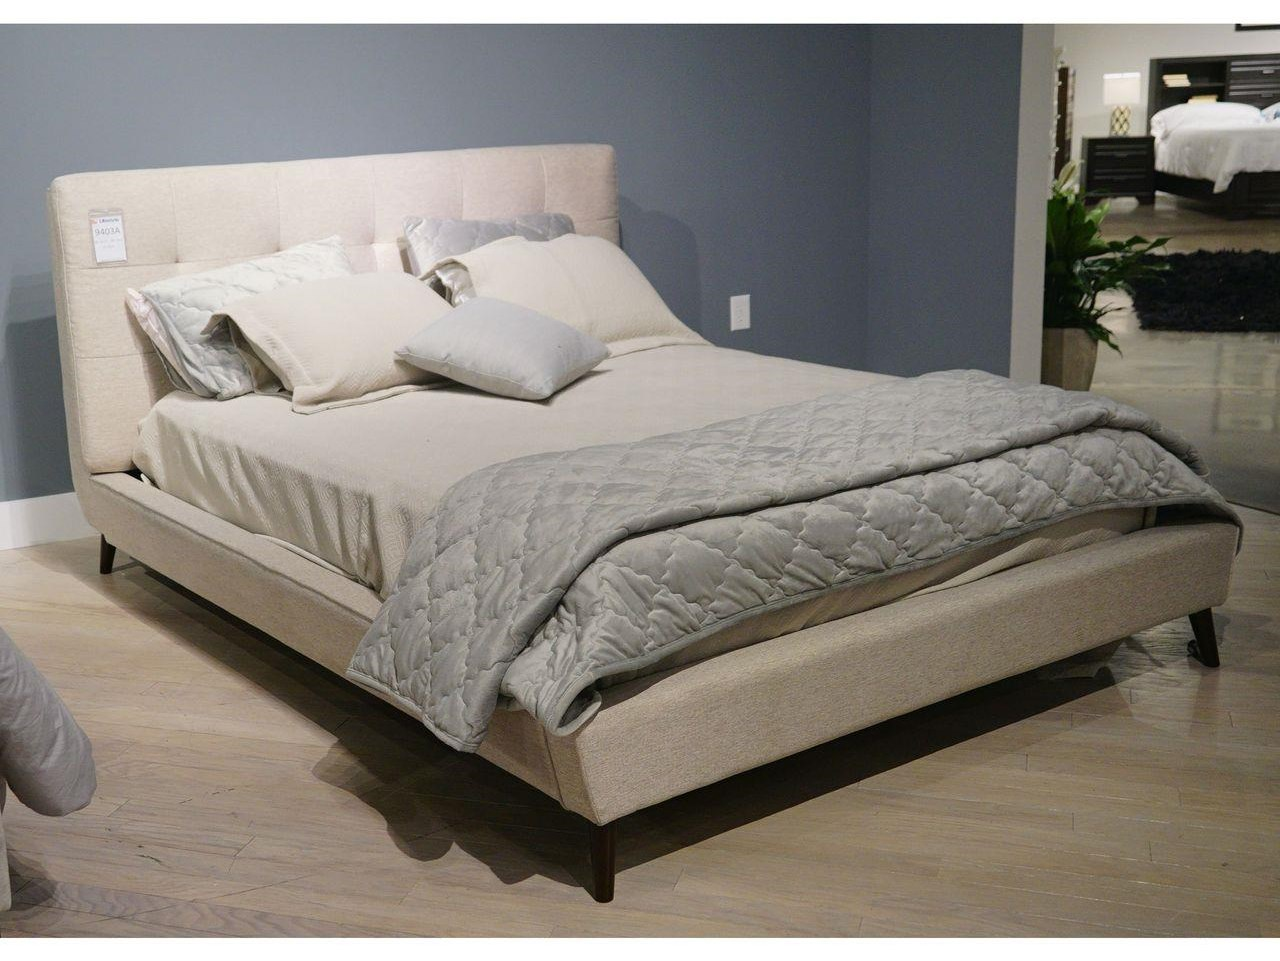 C9403 King Upholstered Bed by Lifestyle at Furniture Fair - North Carolina